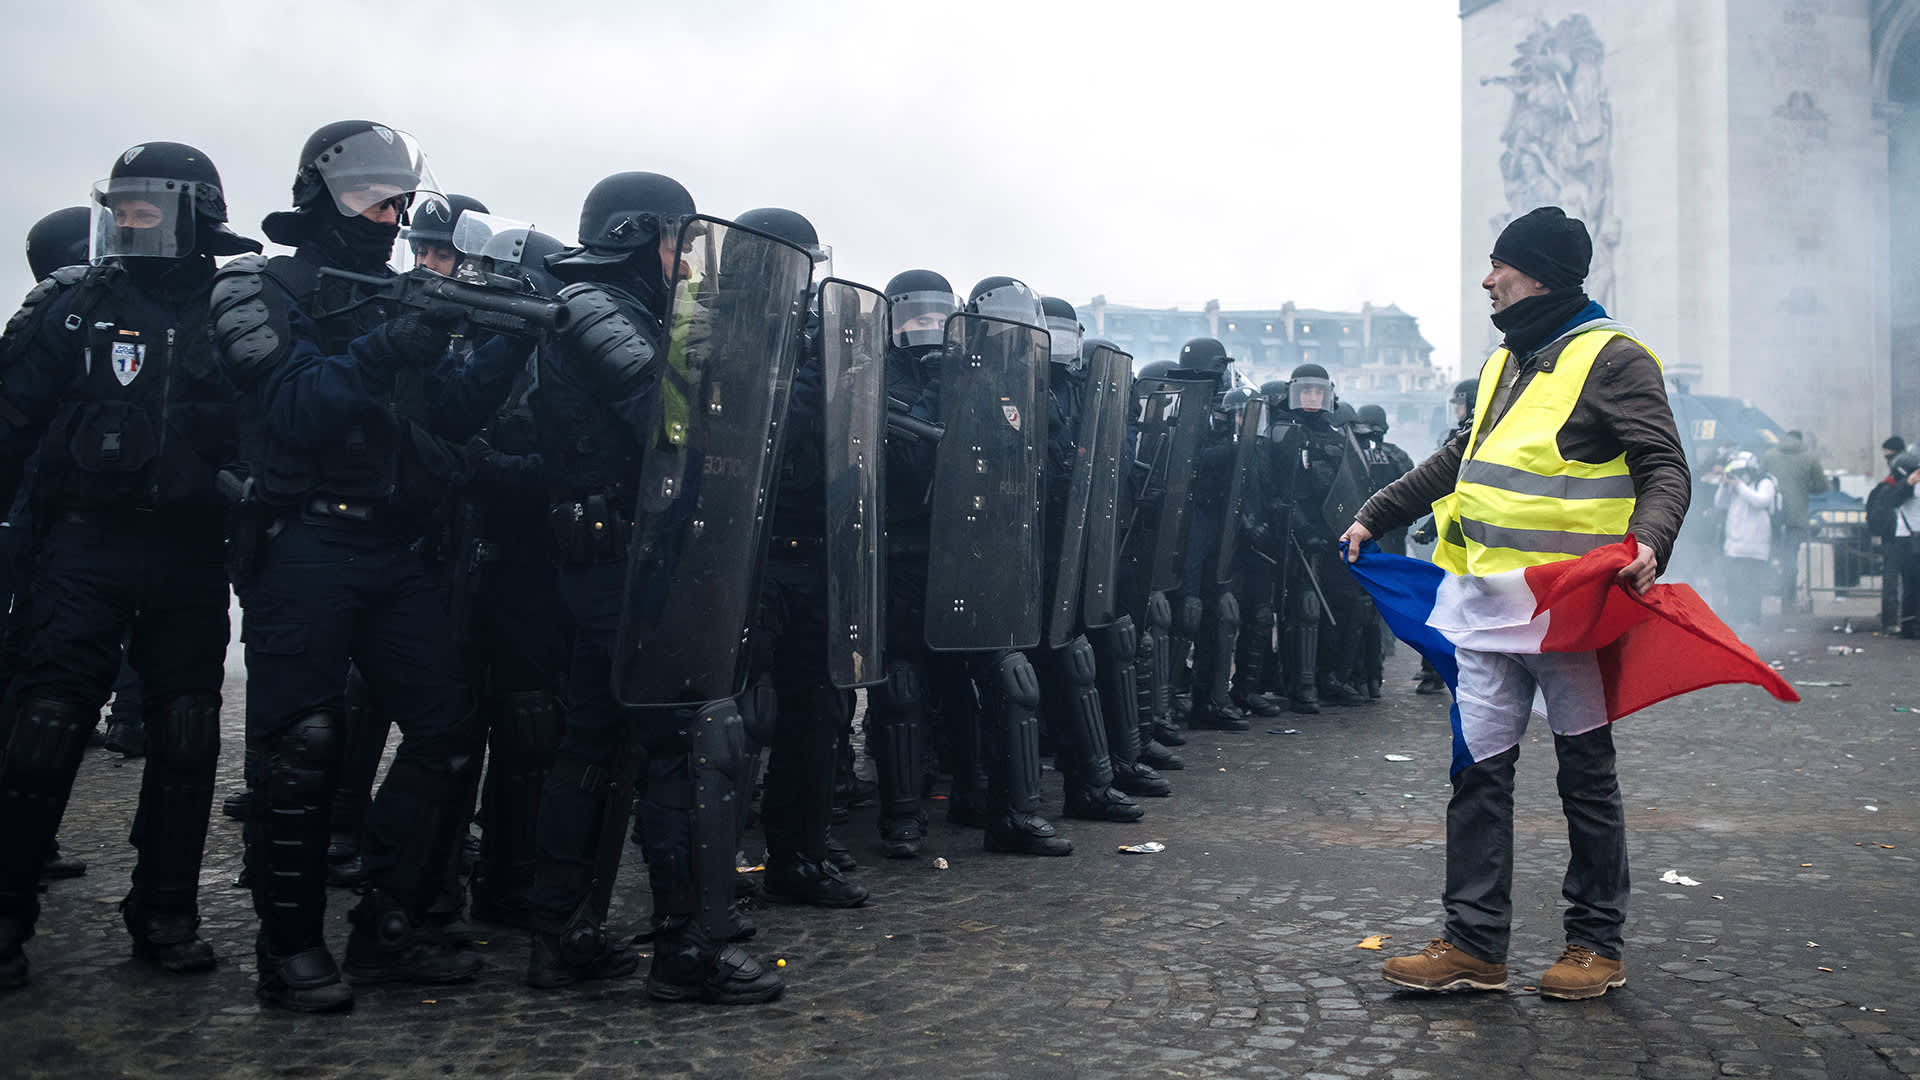 Yellow vests, blue vests and red scarves — Here's why the French are protesting